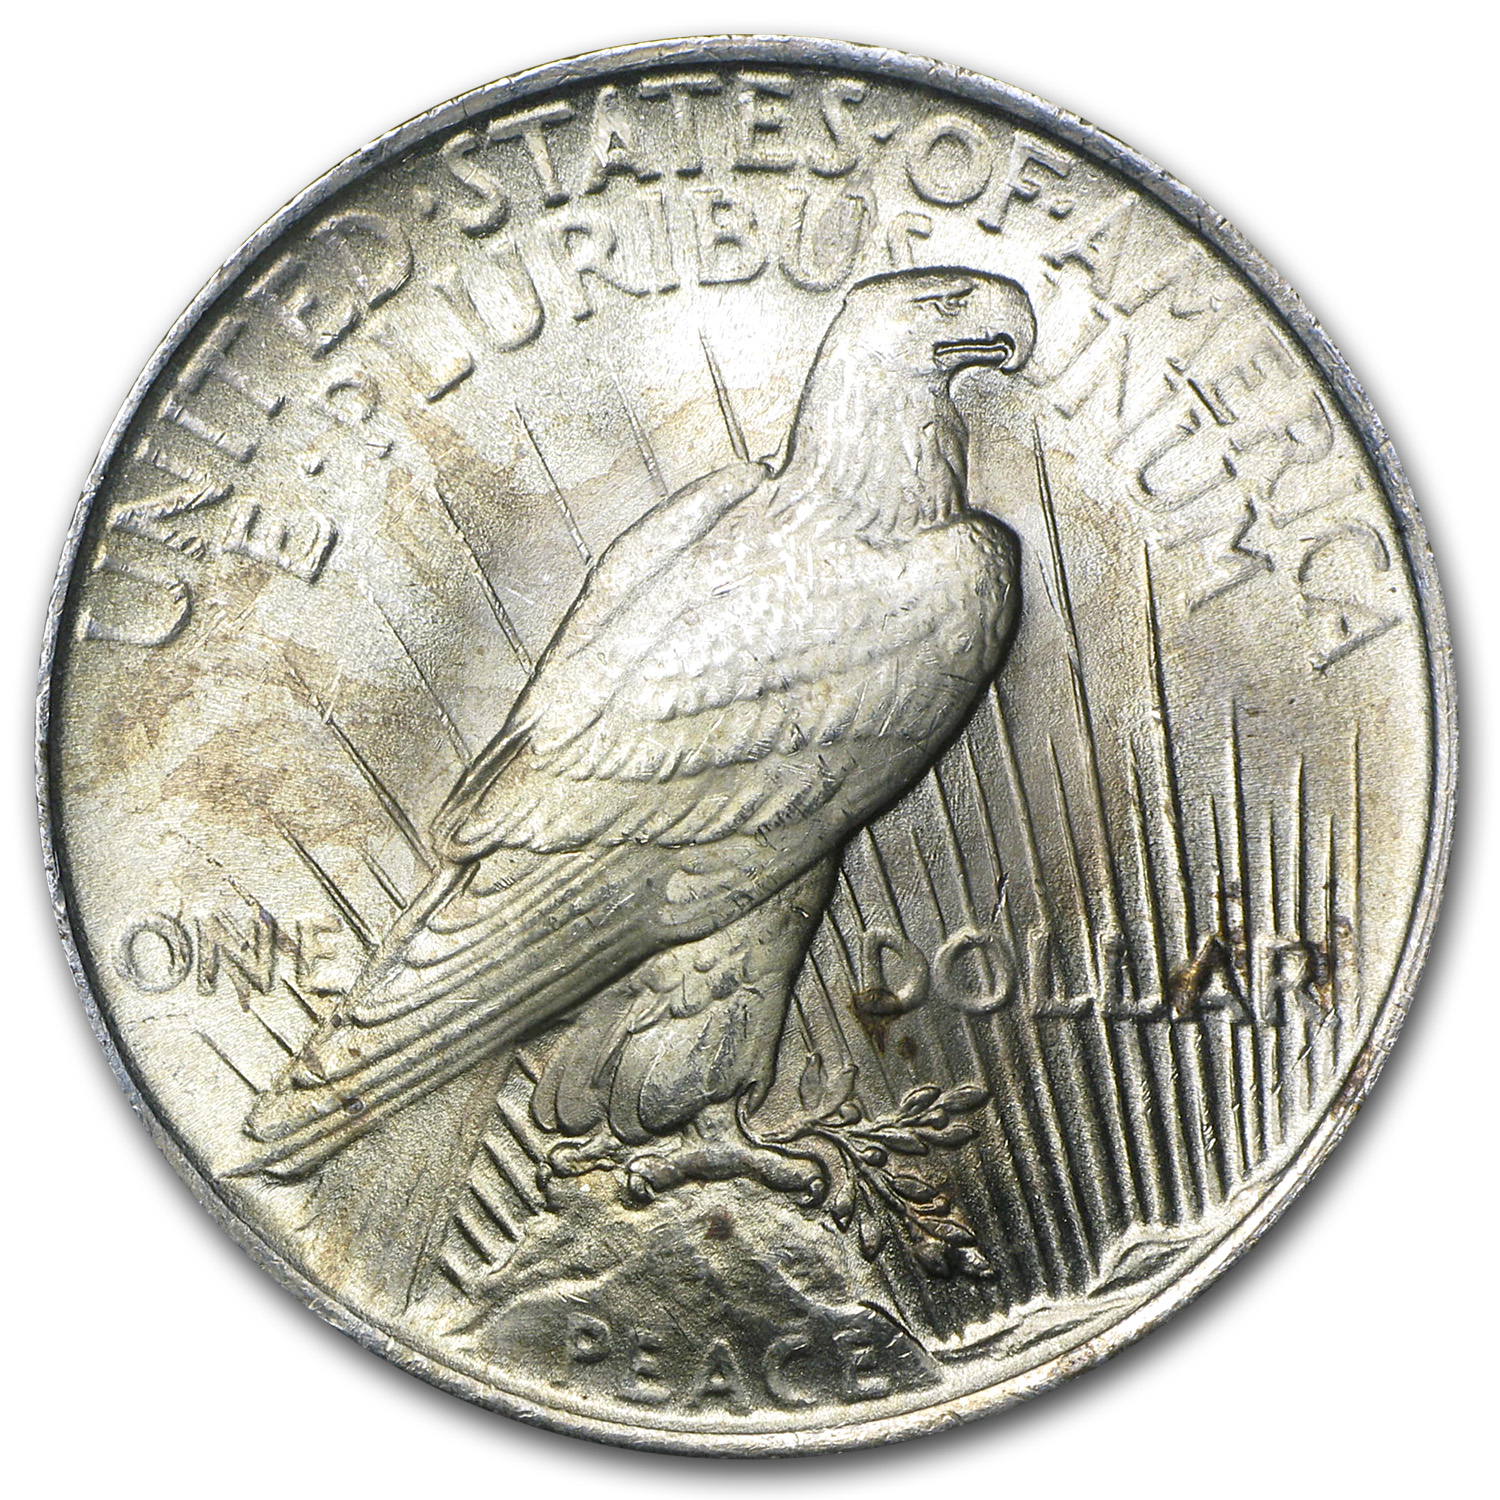 1922 Peace Dollar - Brilliant Uncirculated